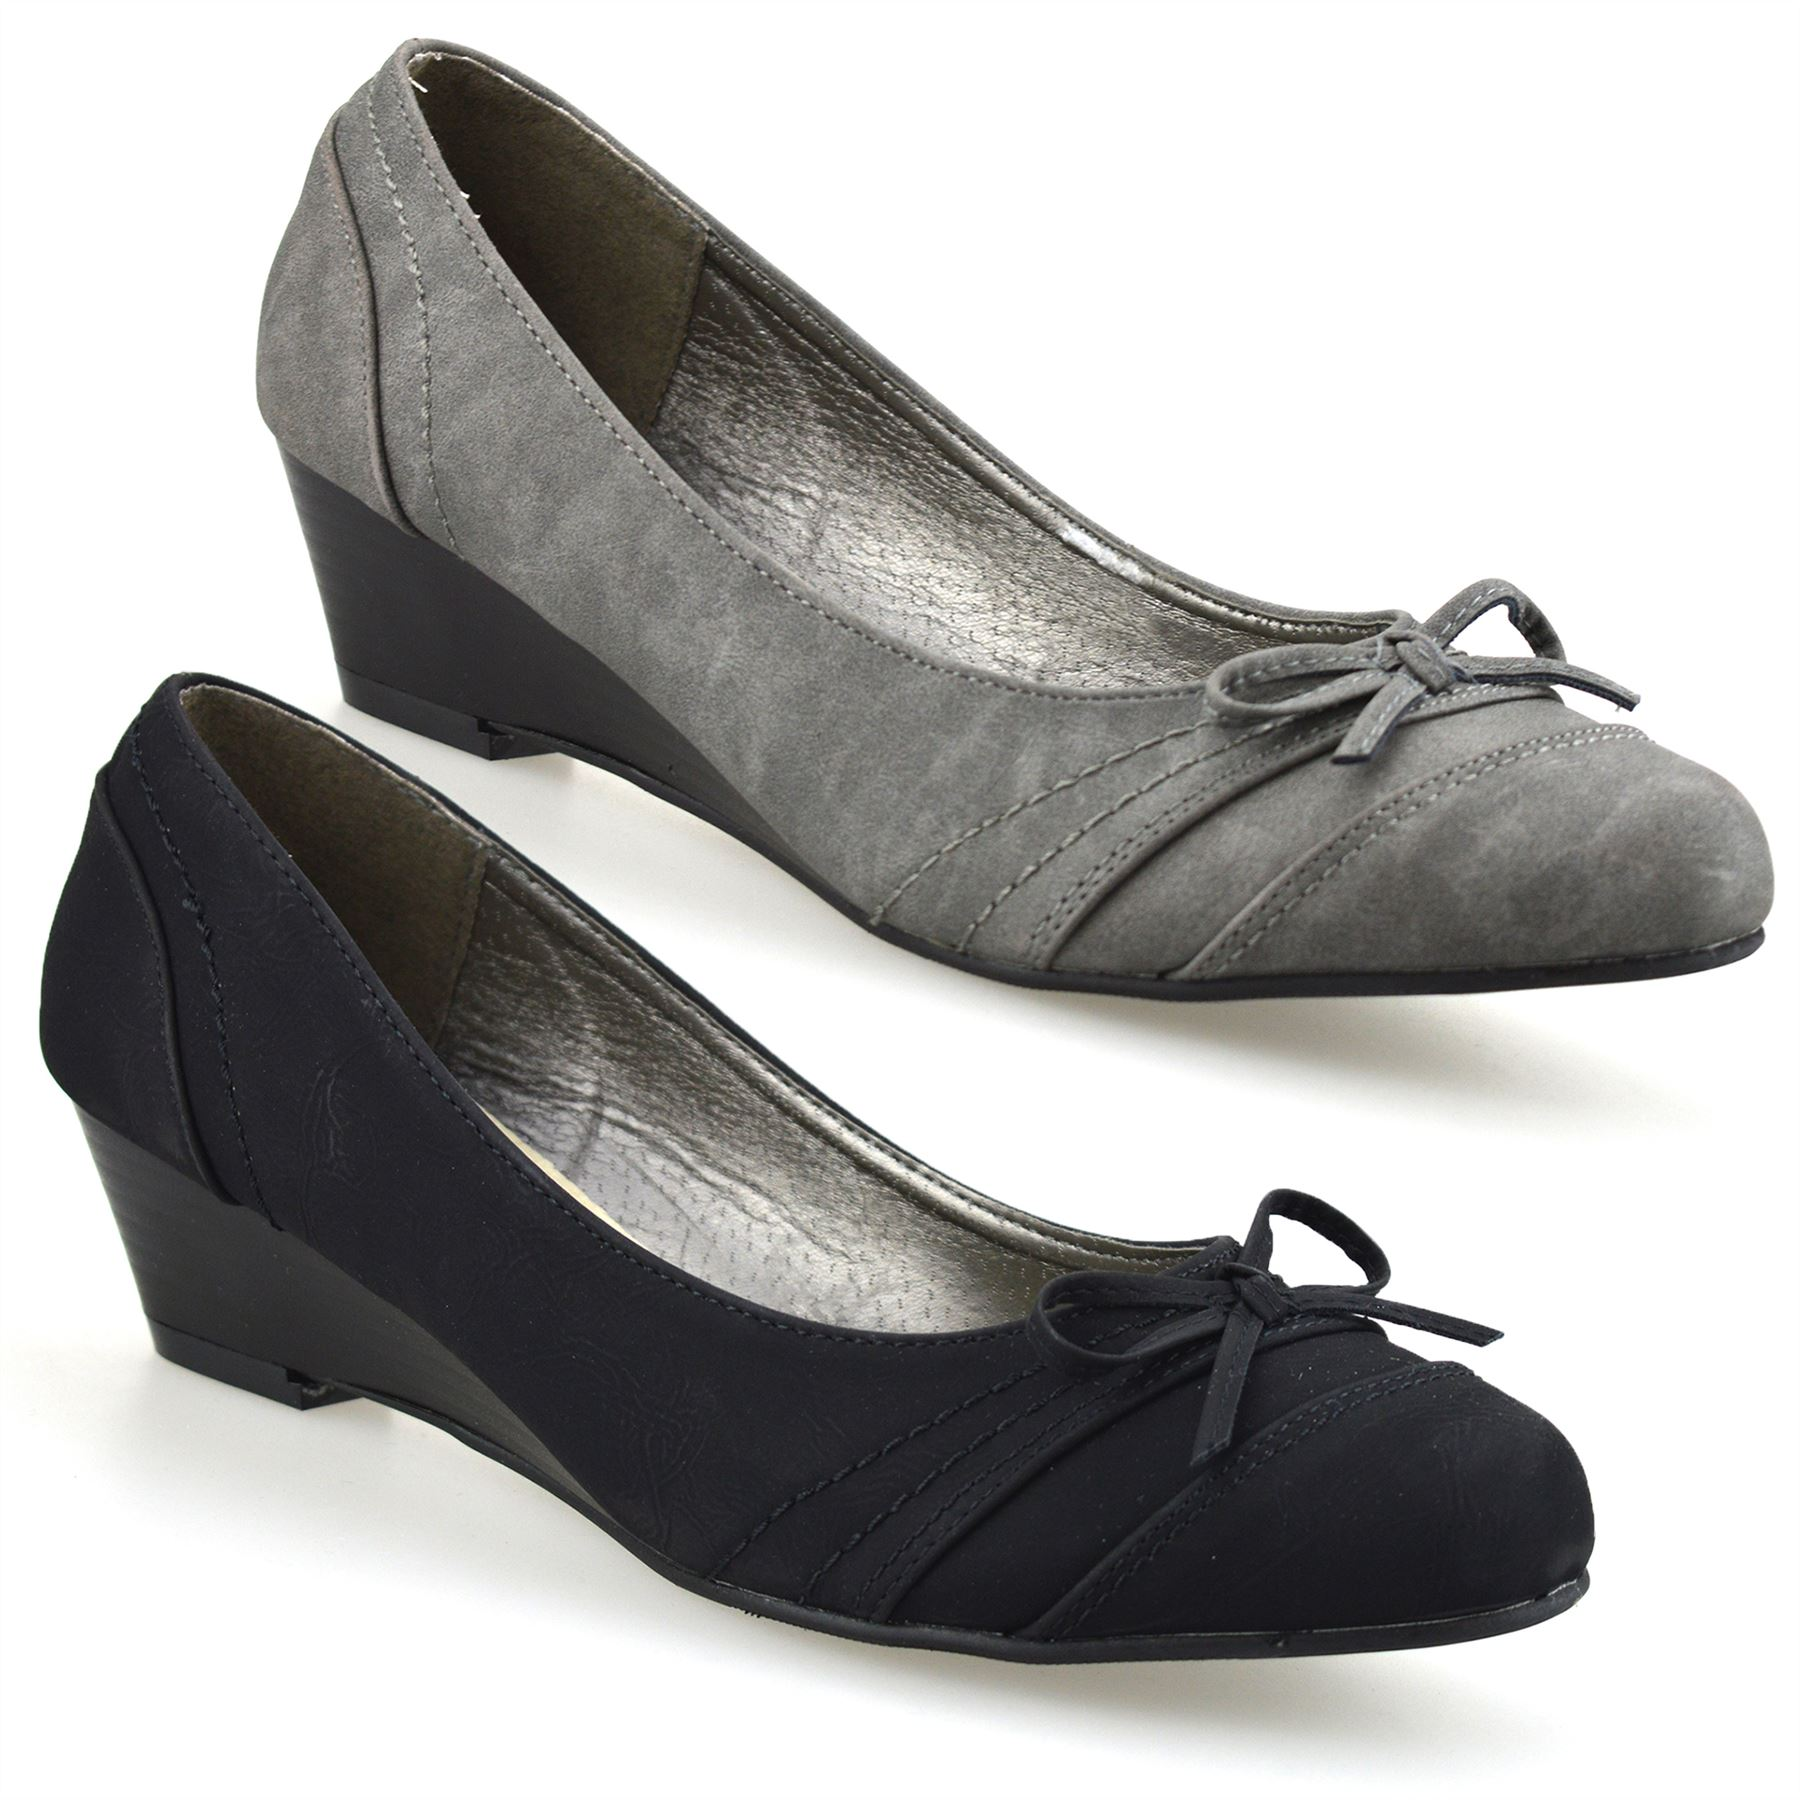 Ladies Womens Mid Low Wedge Heel Casual Smart Work Pumps Party Court Shoes Size